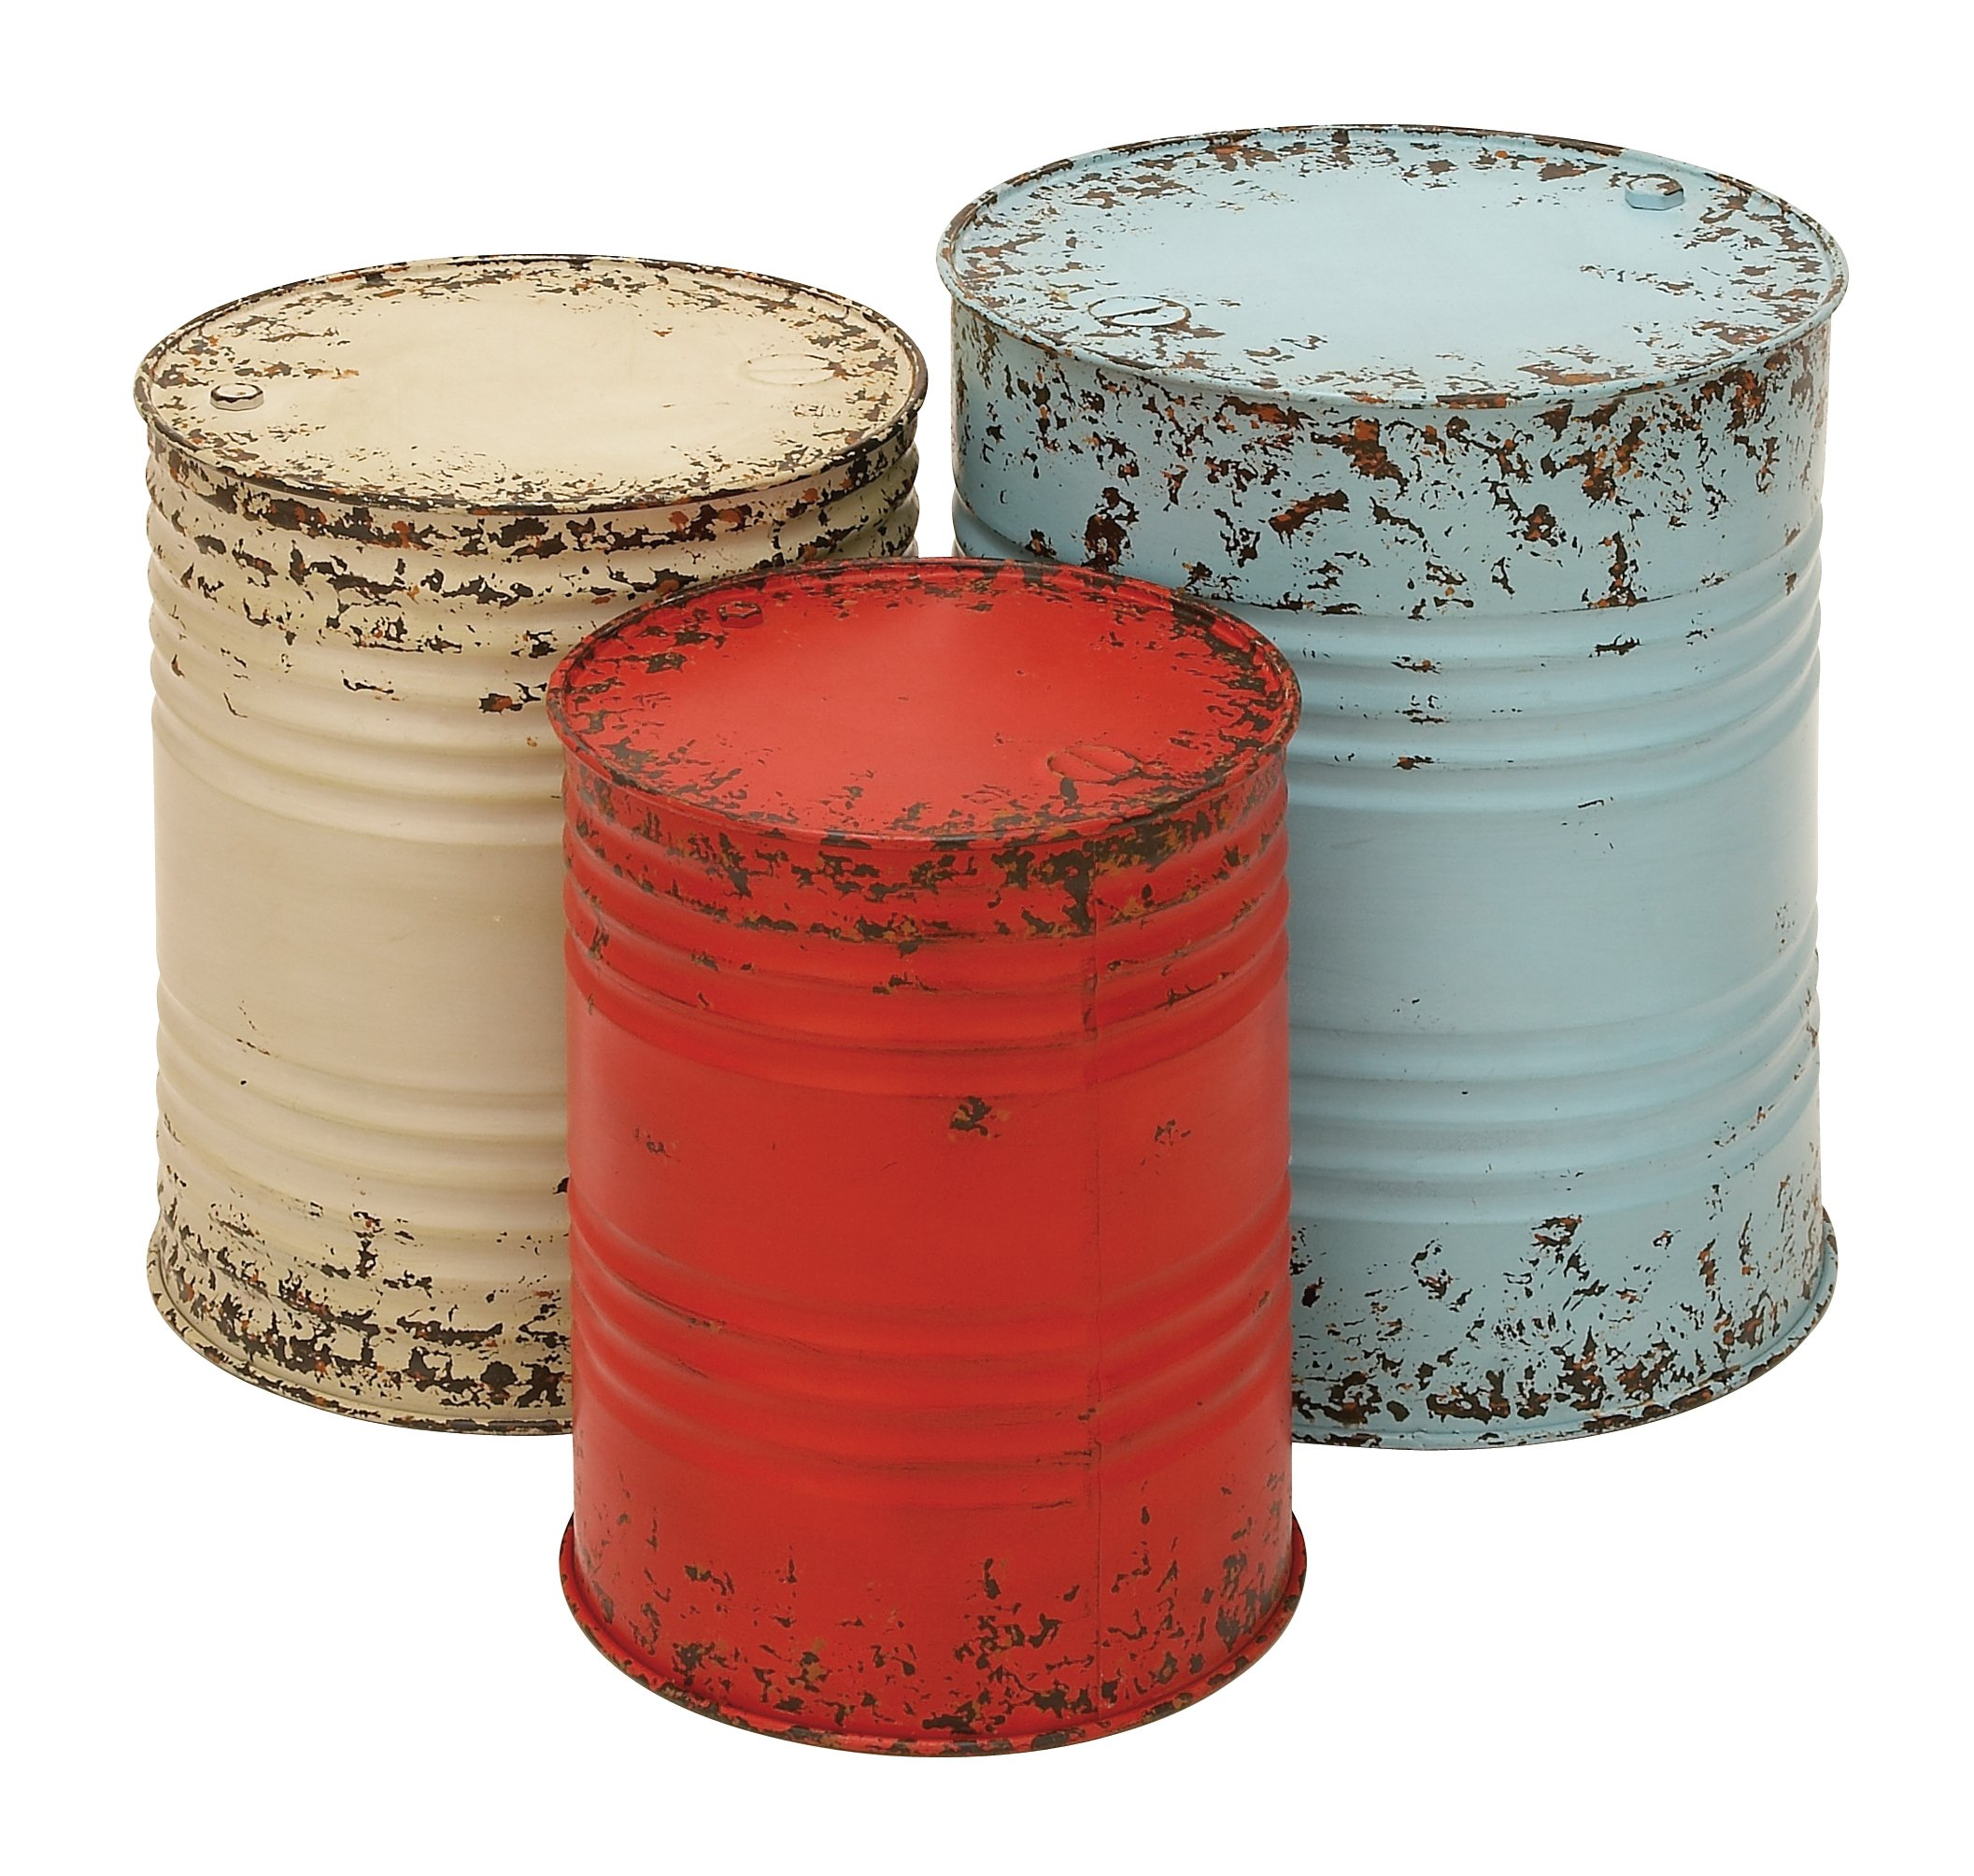 Deco 79 Metal Drum Table Accent Collection, 20 by 18 by 16-Inch, Multi-Color, Set of 3